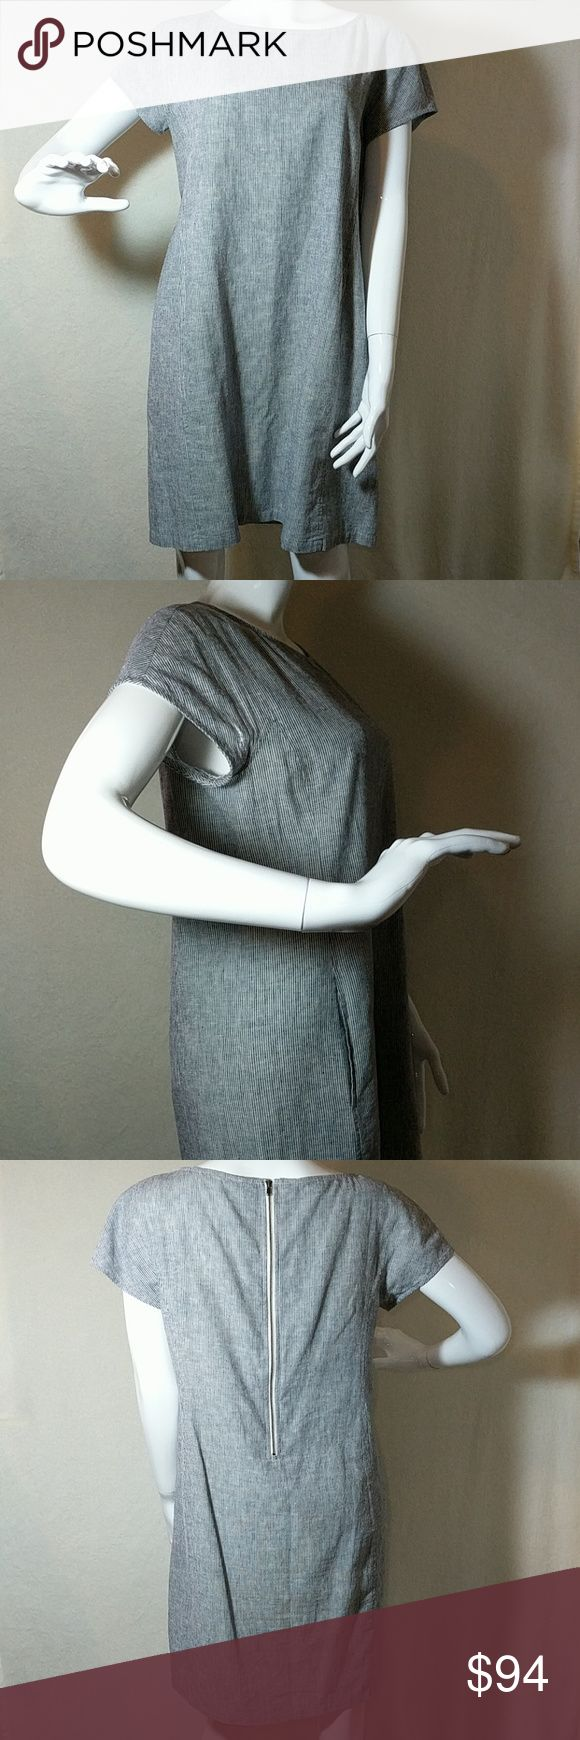 "Eileen Fisher Dress EUC, Denim blue and white, seersucker dress, 55% hemp and 45% organic cotton, back zipper, 20"" pit to pit, 35"" in length, size S/P, 💖 please no low ball offers💖 Eileen Fisher Dresses Mini"